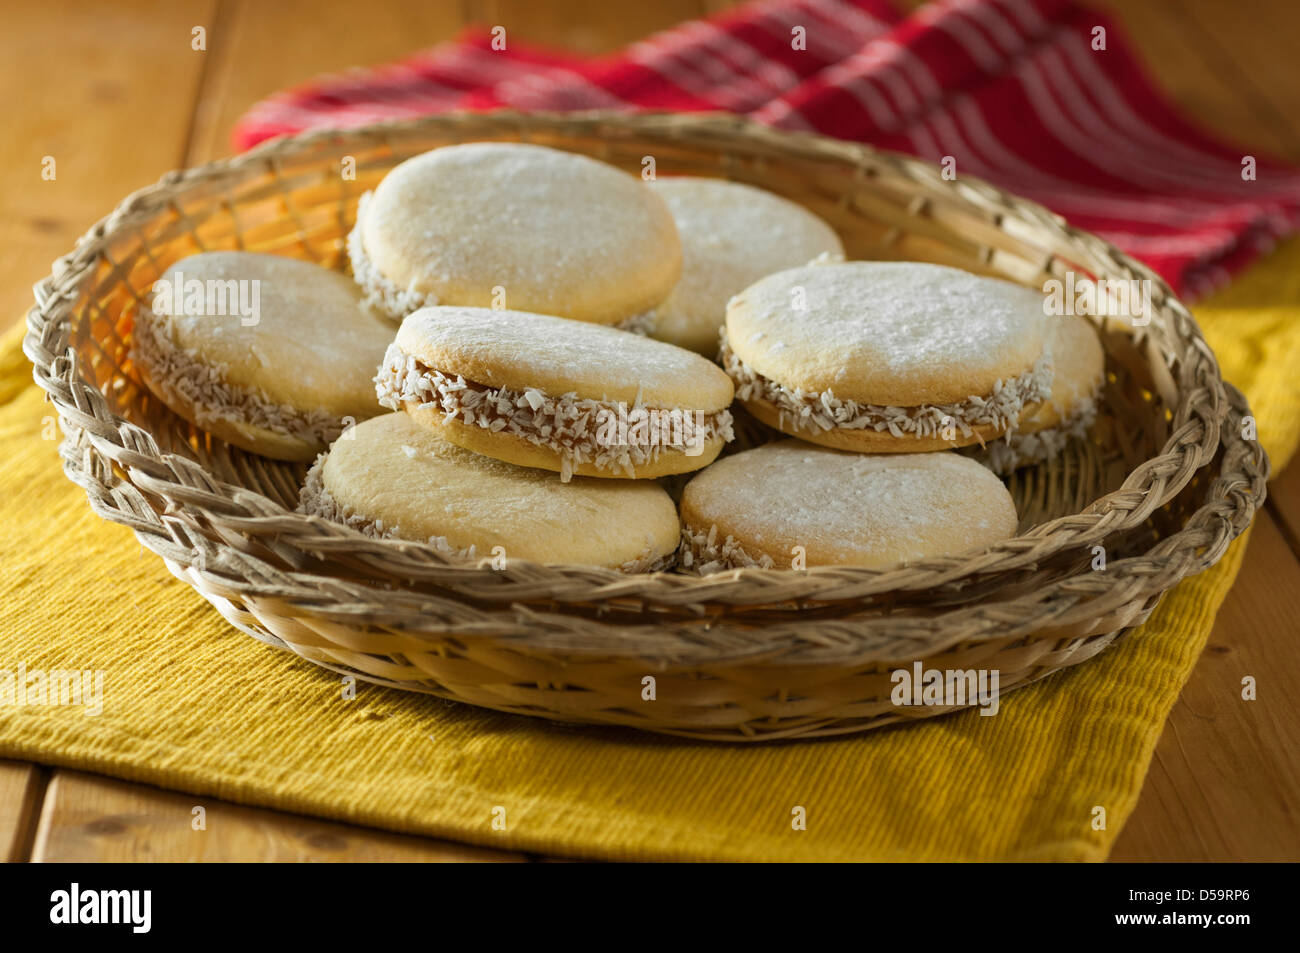 Alfajores South American cookies or biscuits Stock Photo